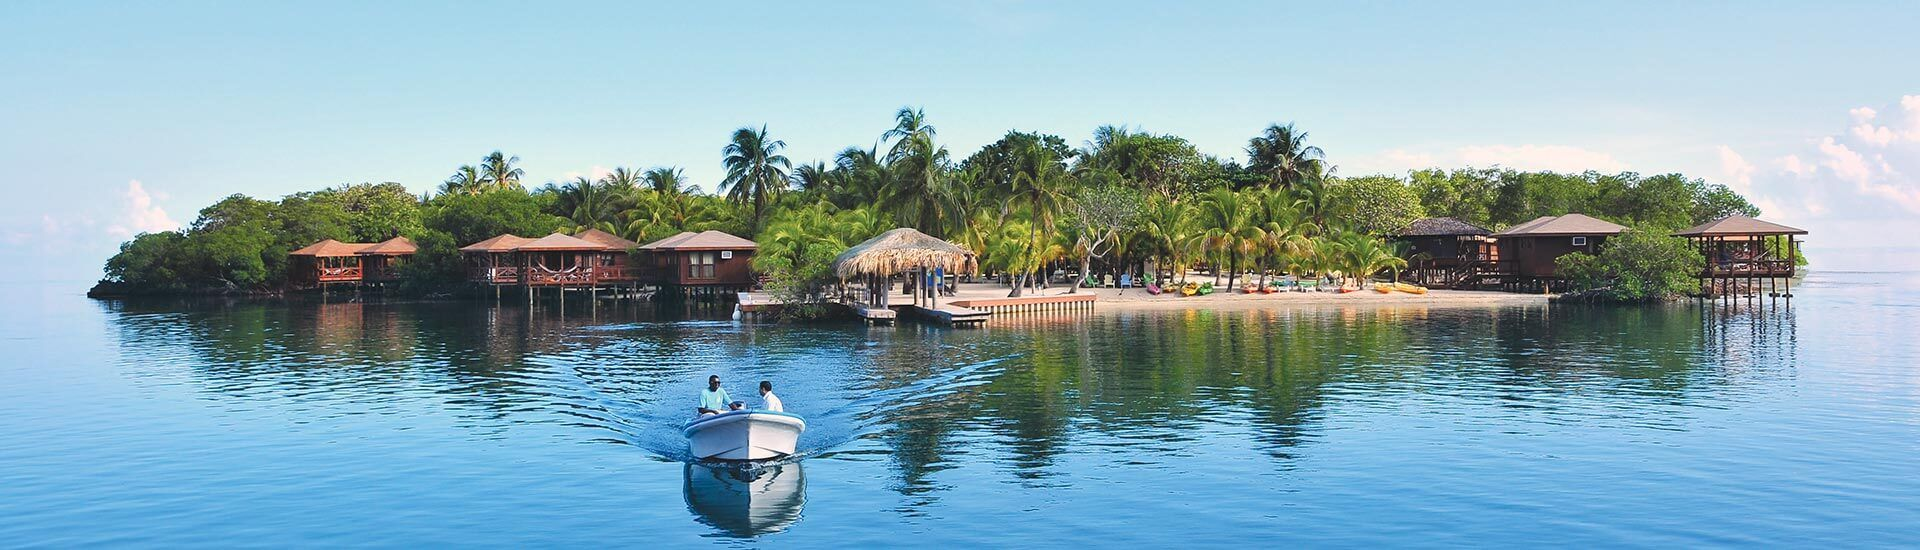 The island of Roatan is surrounded by more than spectacular 175 dive sites. You one-stop headquarters for exploring this underwater wonderland is Anthony's Key Resort.